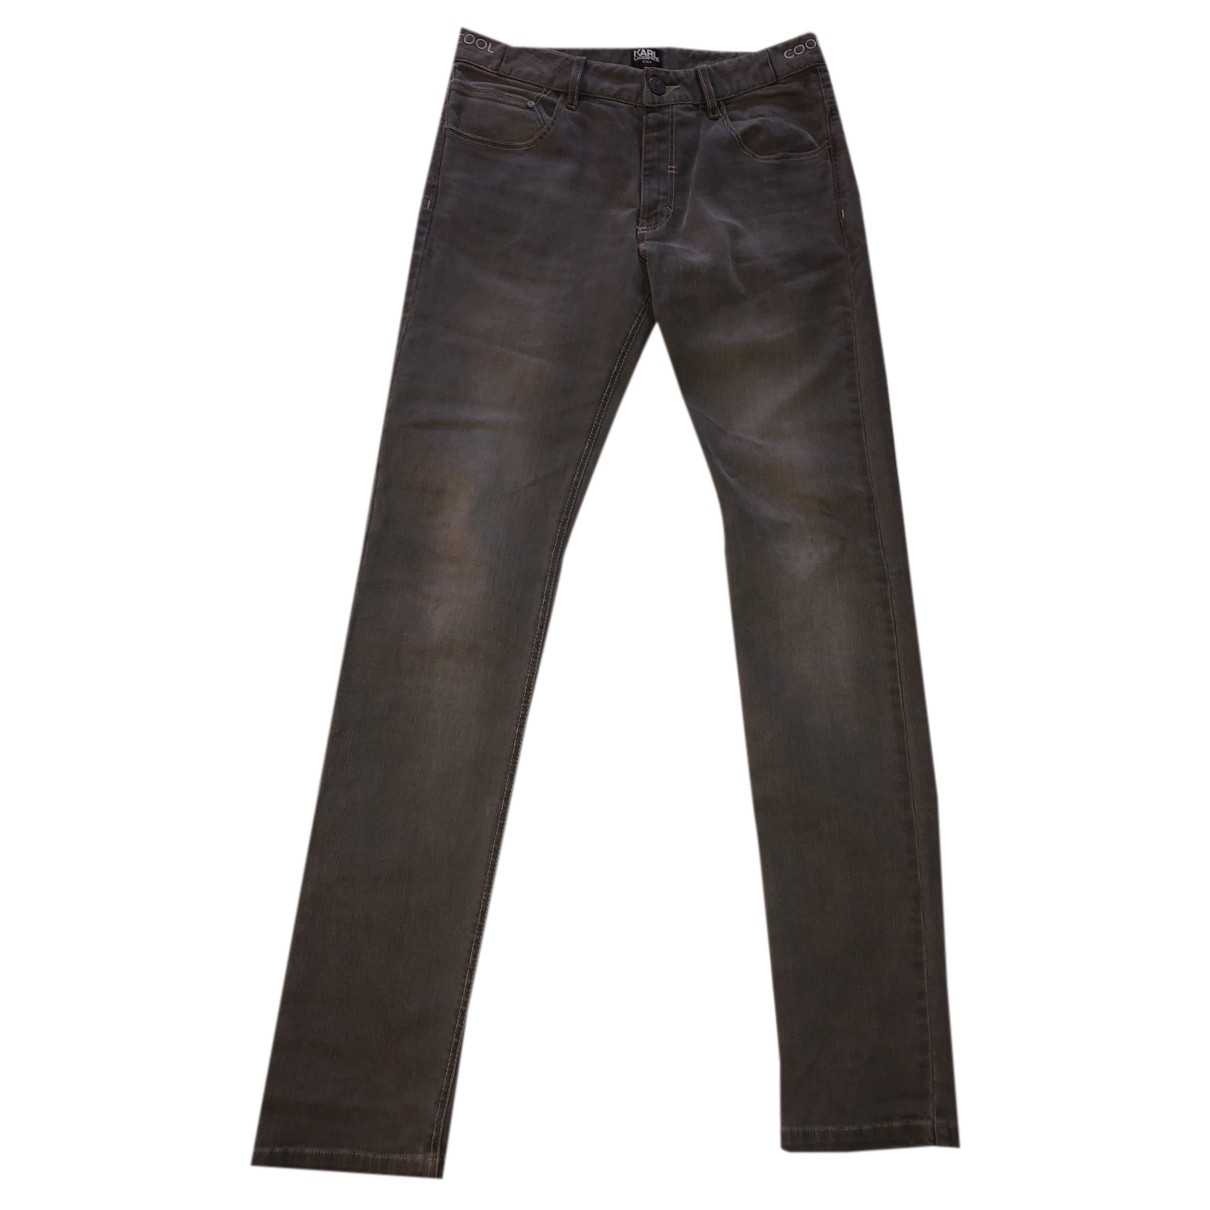 Karl Lagerfeld N Grey Cotton Trousers for Kids 14 years - S FR